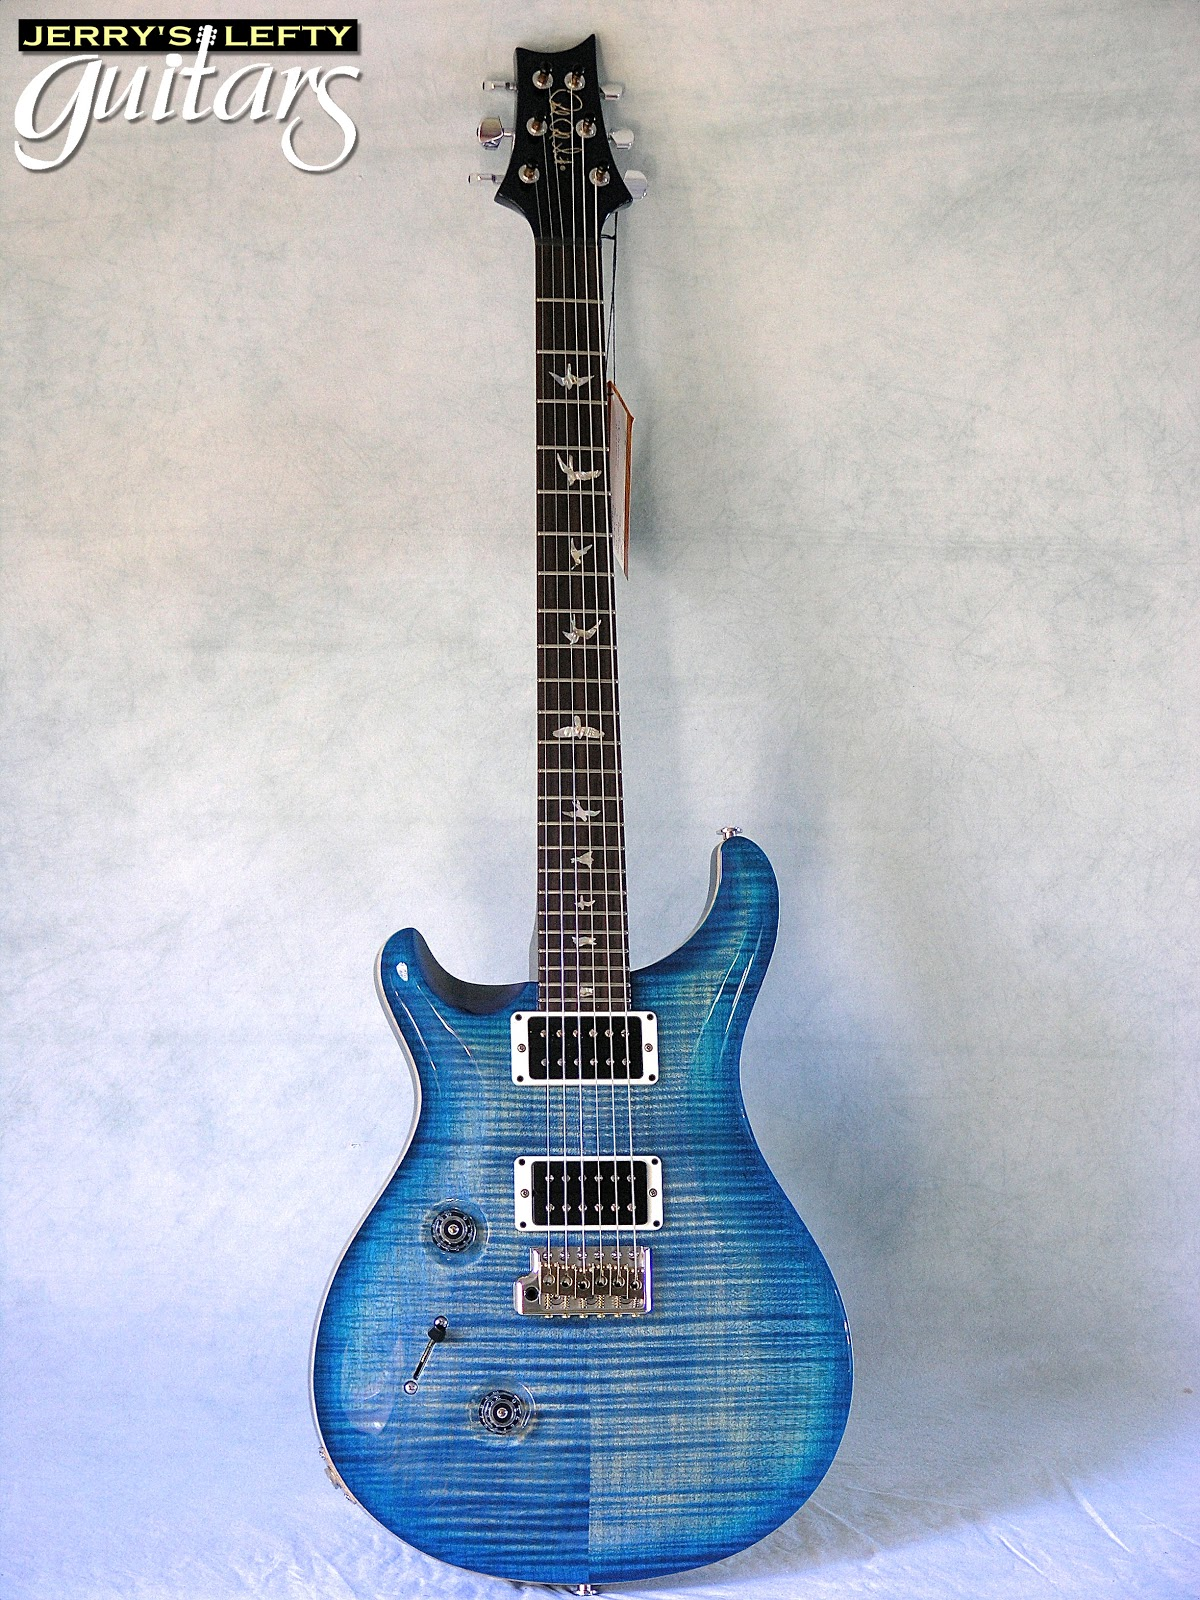 jerry 39 s lefty guitars newest guitar arrivals updated weekly prs custom 24 10 top flame faded. Black Bedroom Furniture Sets. Home Design Ideas